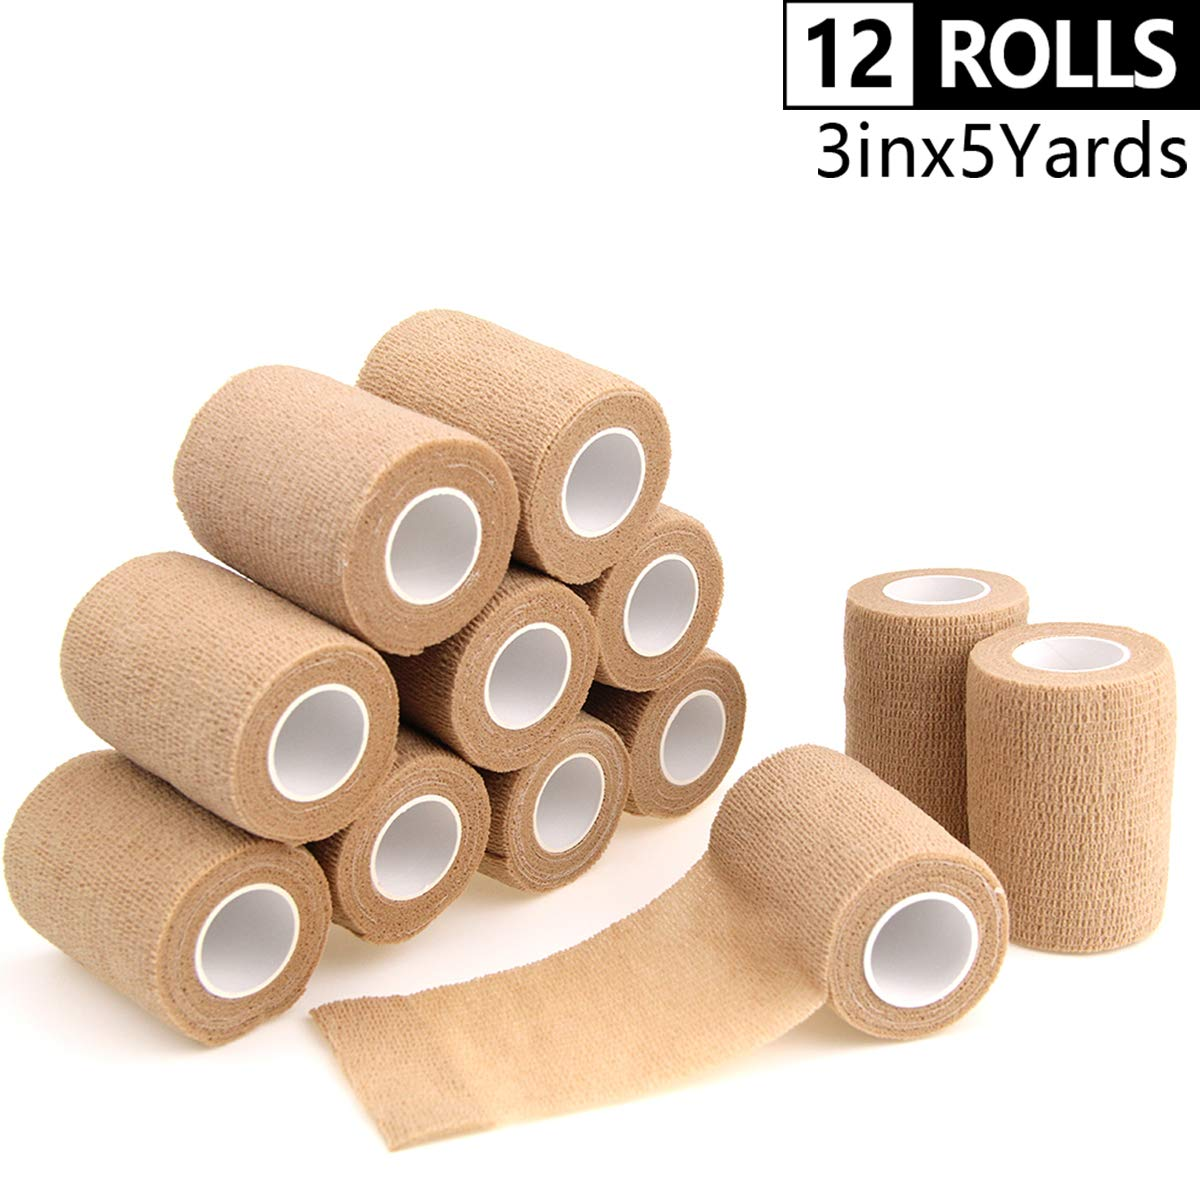 AUPCON Vet Wrap Self Adherent Wrap Cohesive Bandage Tape Animal Bandage Self Adhesive Bandages for Horse, Pets & Ankle Sprains & Swelling 3 Inches Beige 12 Rolls